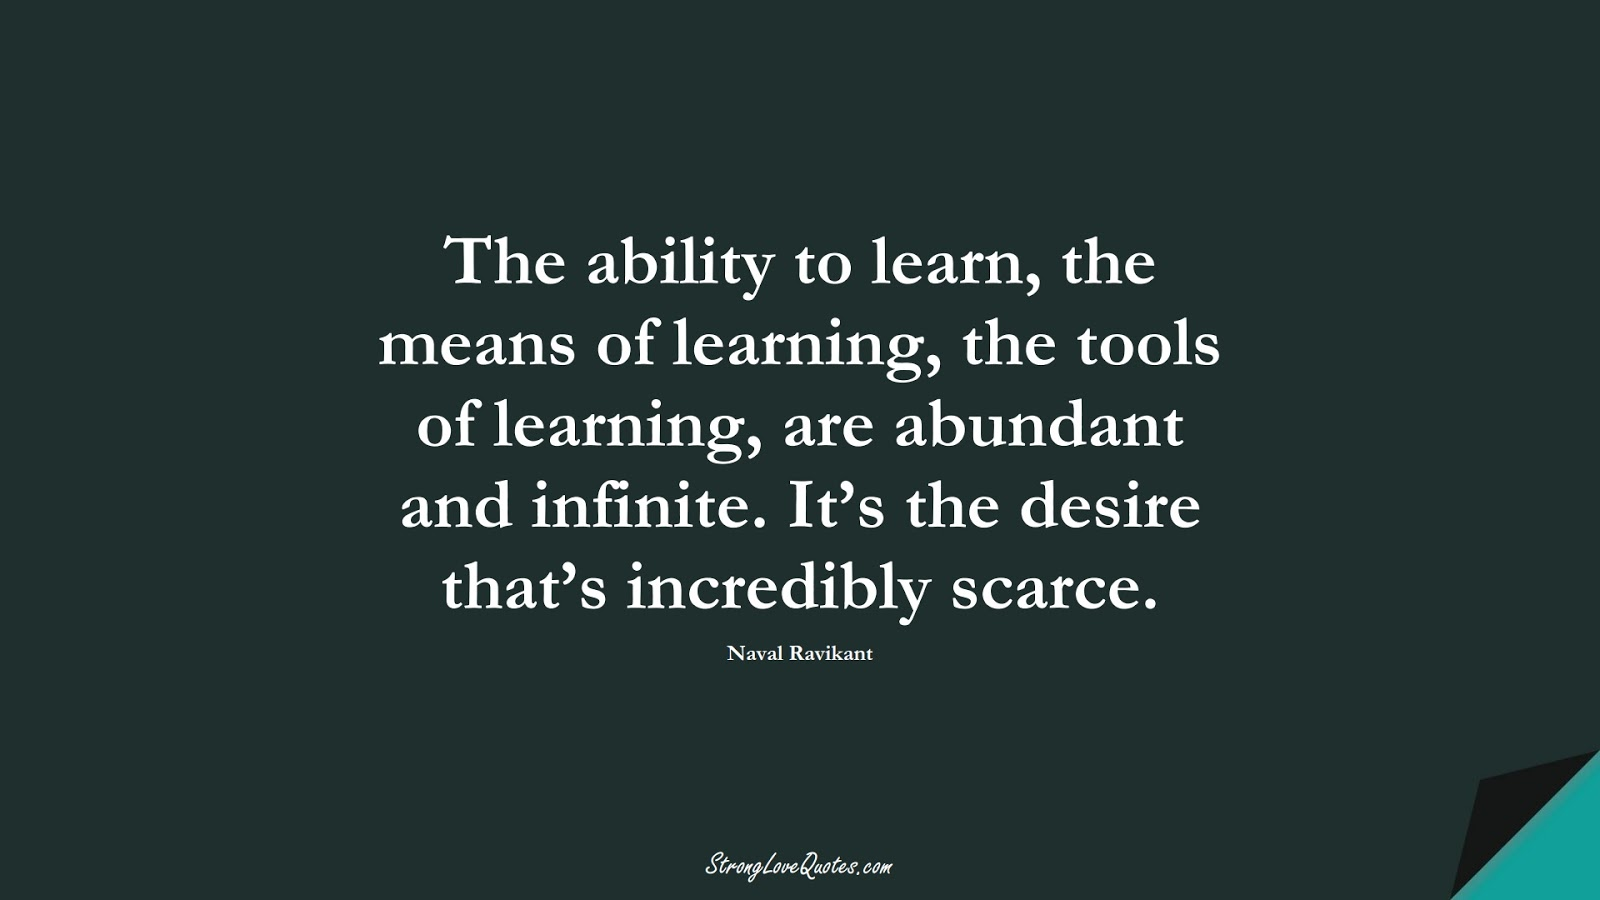 The ability to learn, the means of learning, the tools of learning, are abundant and infinite. It's the desire that's incredibly scarce. (Naval Ravikant);  #KnowledgeQuotes